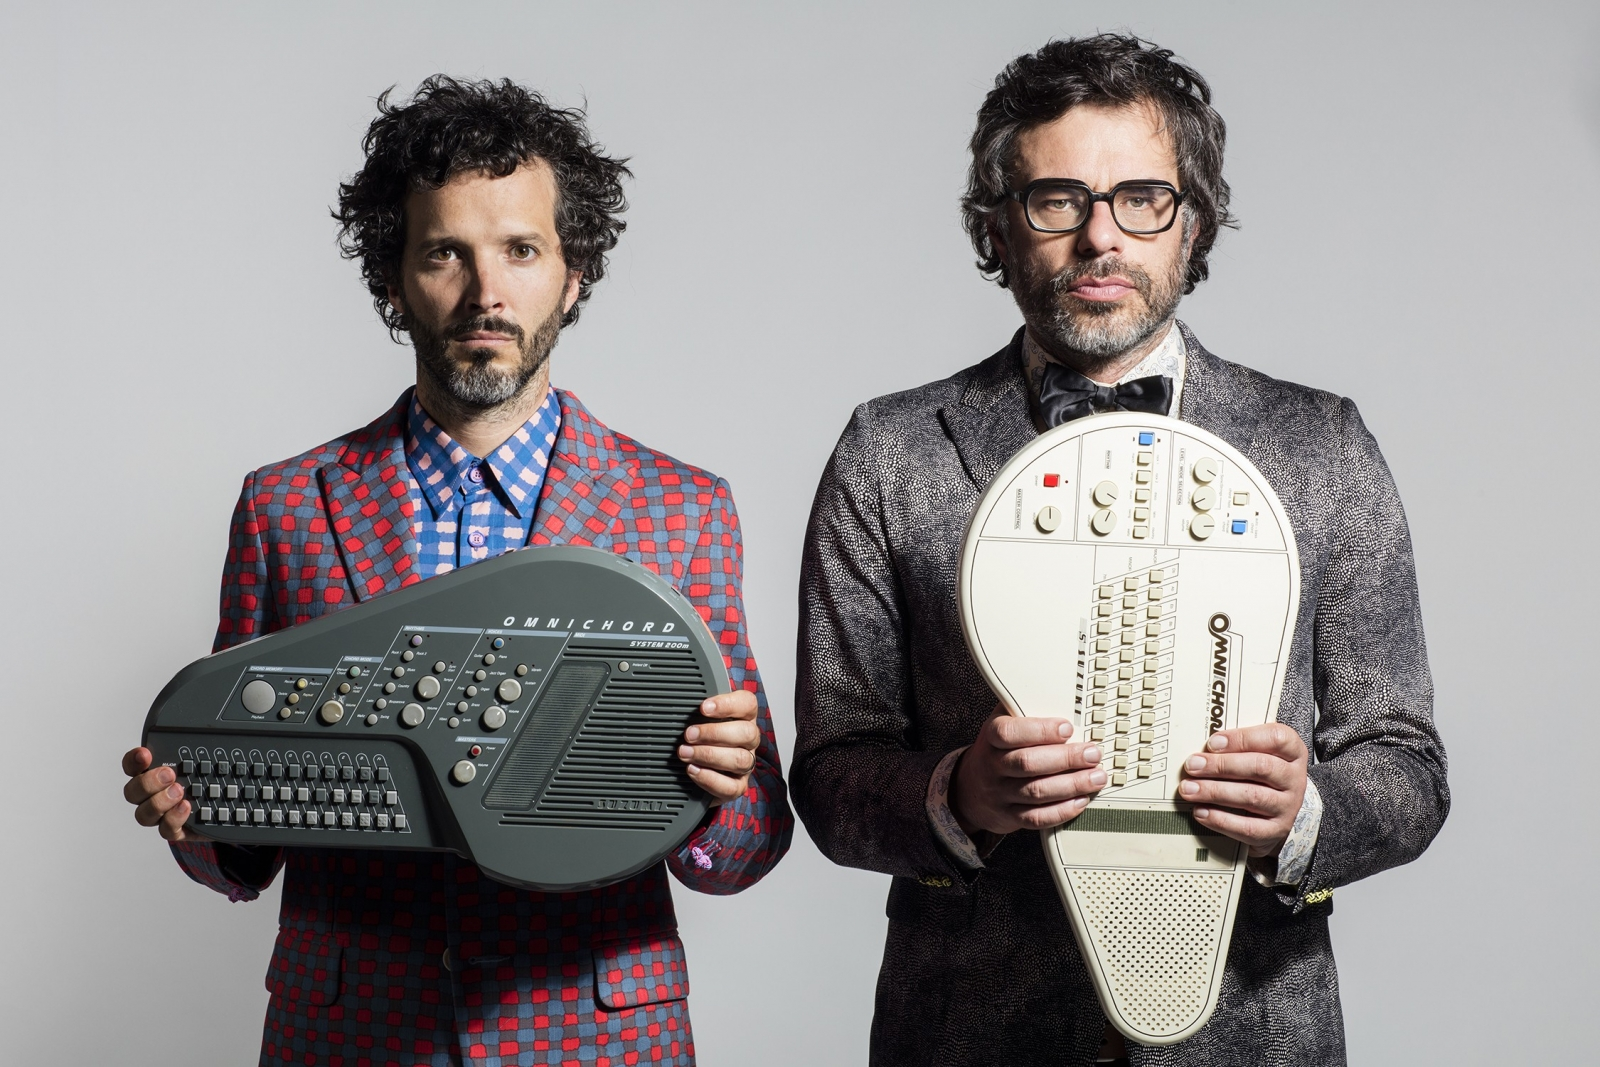 Flight of the Conchords to return with one-hour special